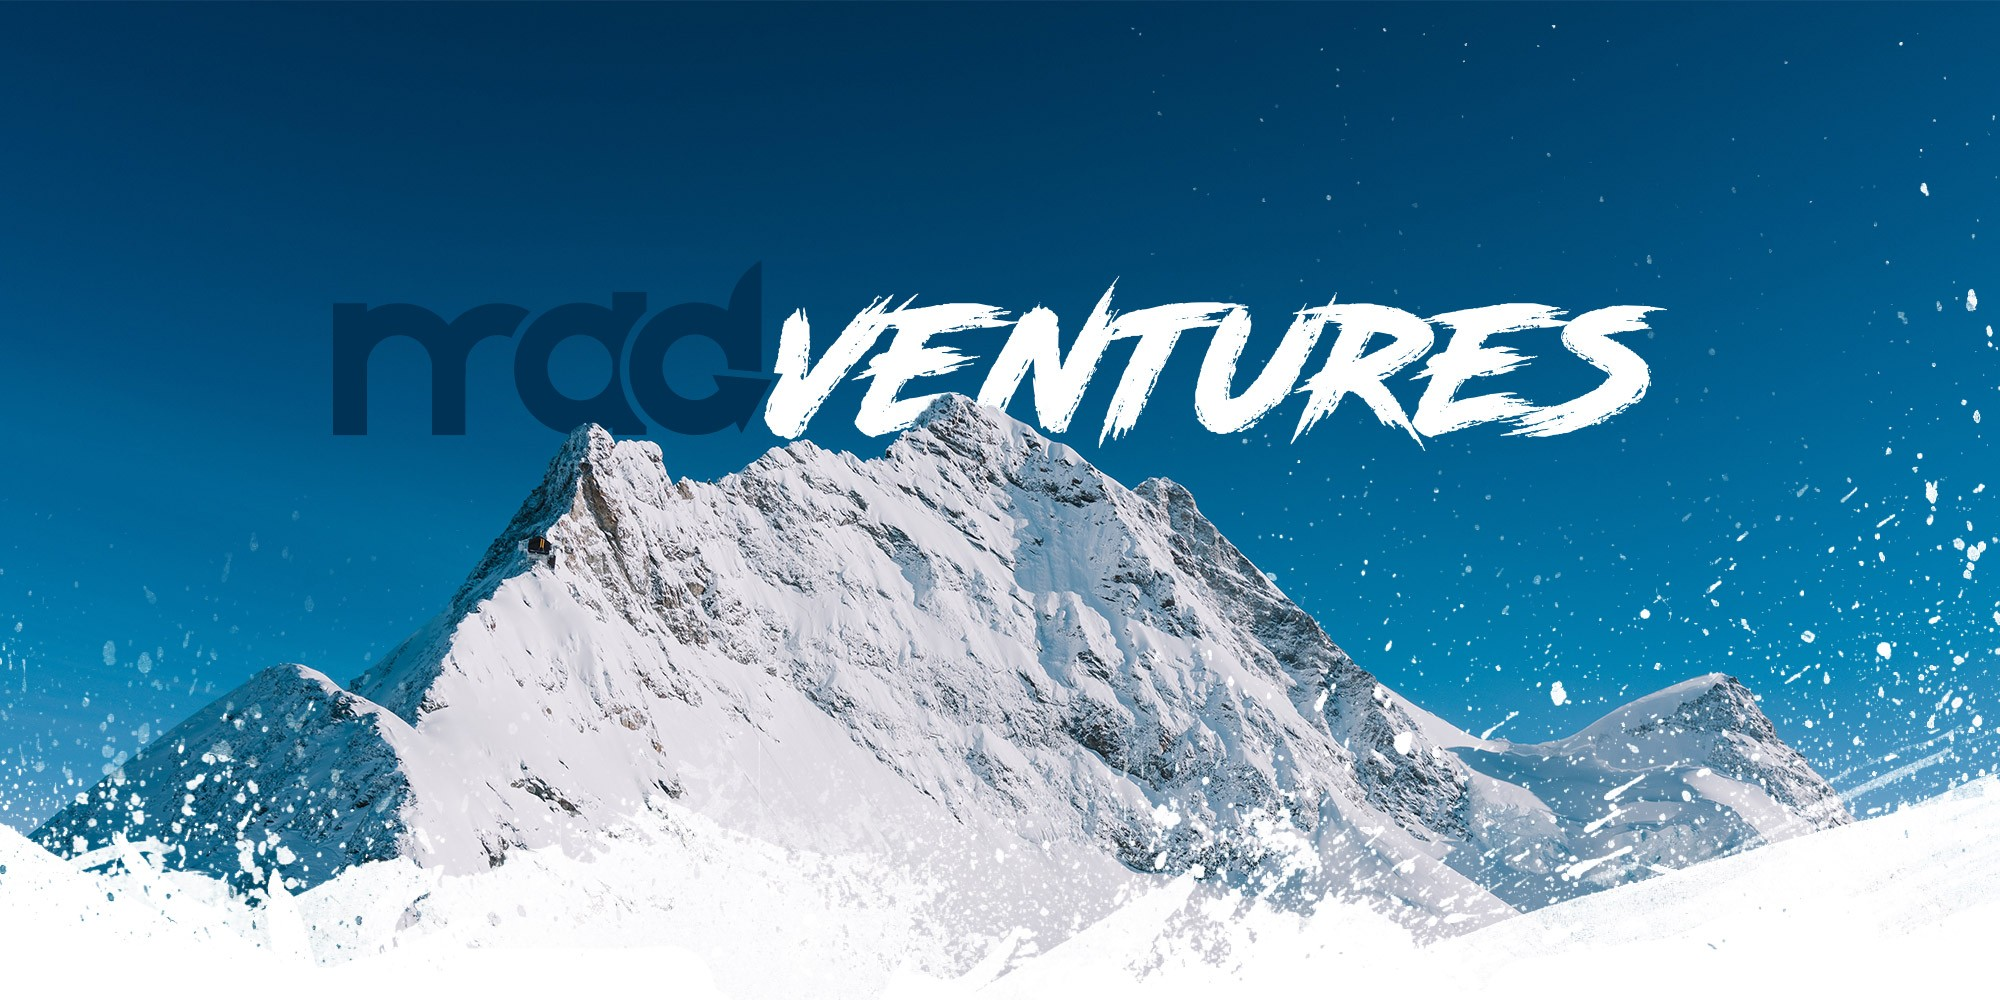 MADventures logo over the mountains